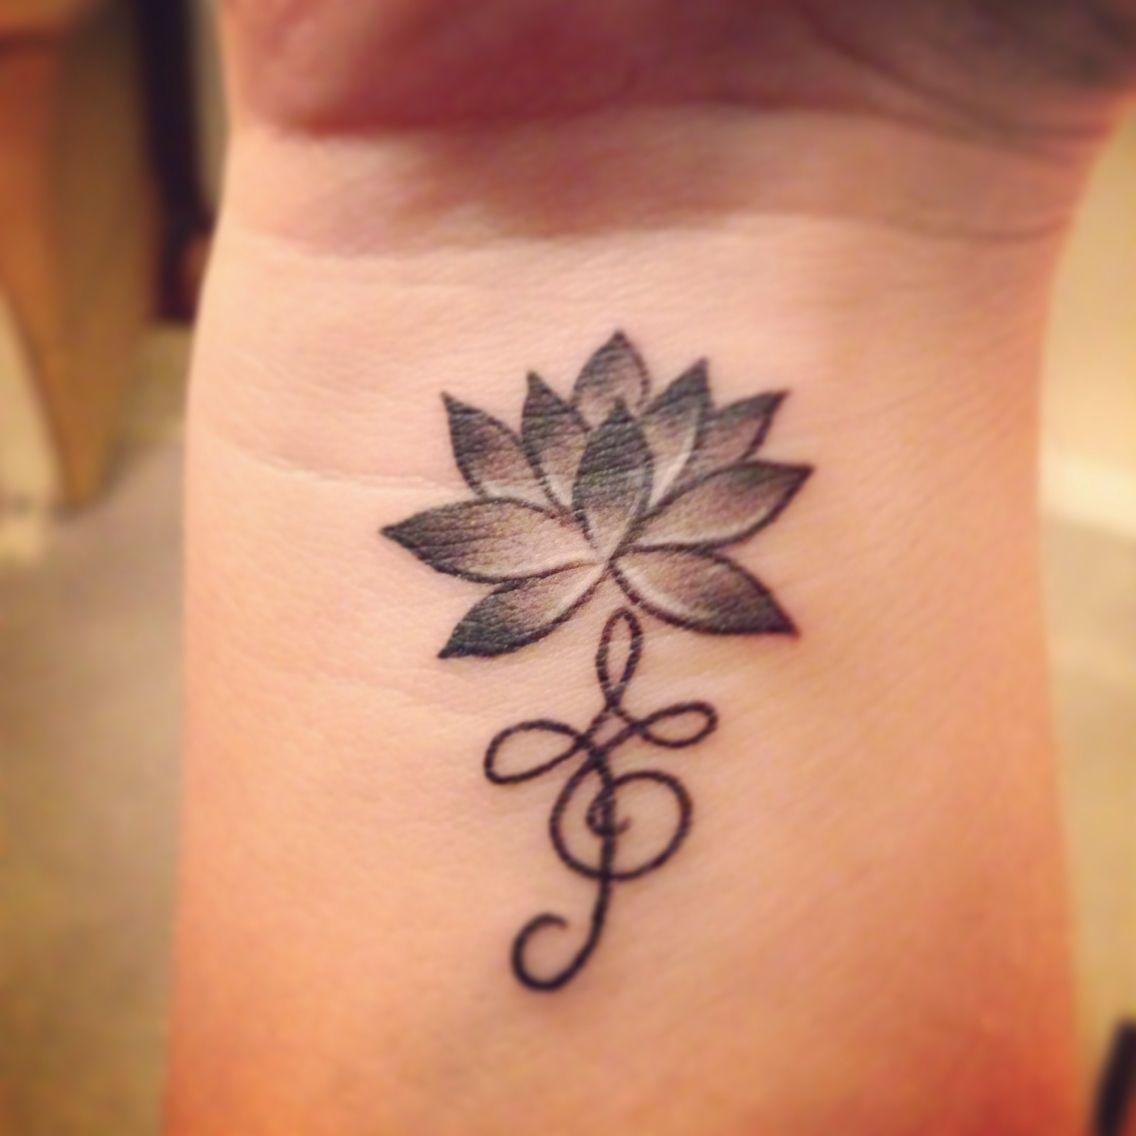 Lotus flower for strength and beauty Zibu symbol meaning embrace life Markin